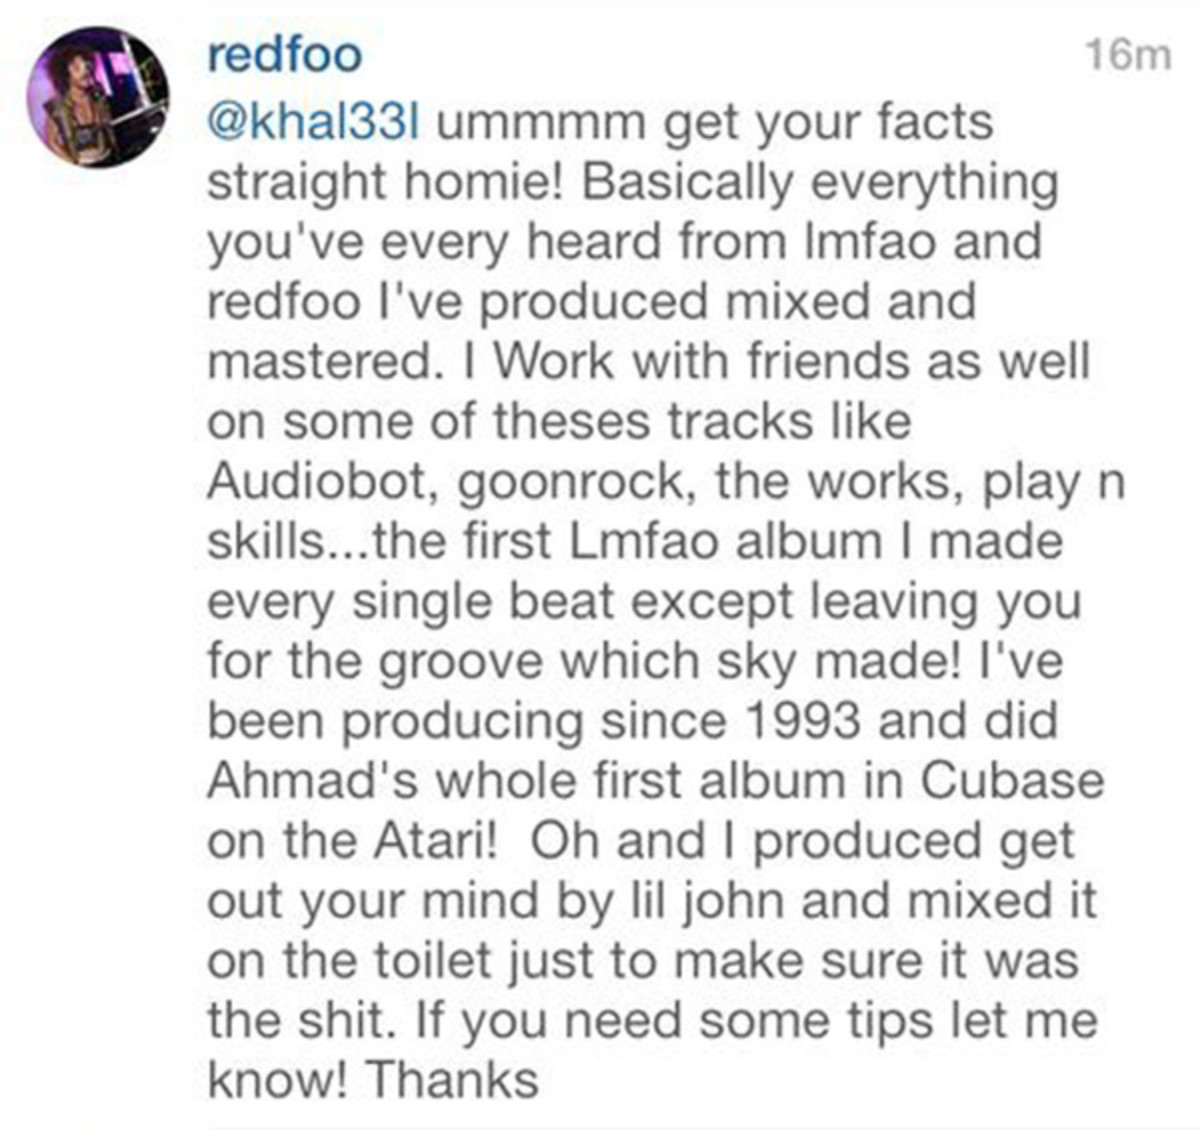 Redfoo Responds To Ghost Producing Accusations By Troll